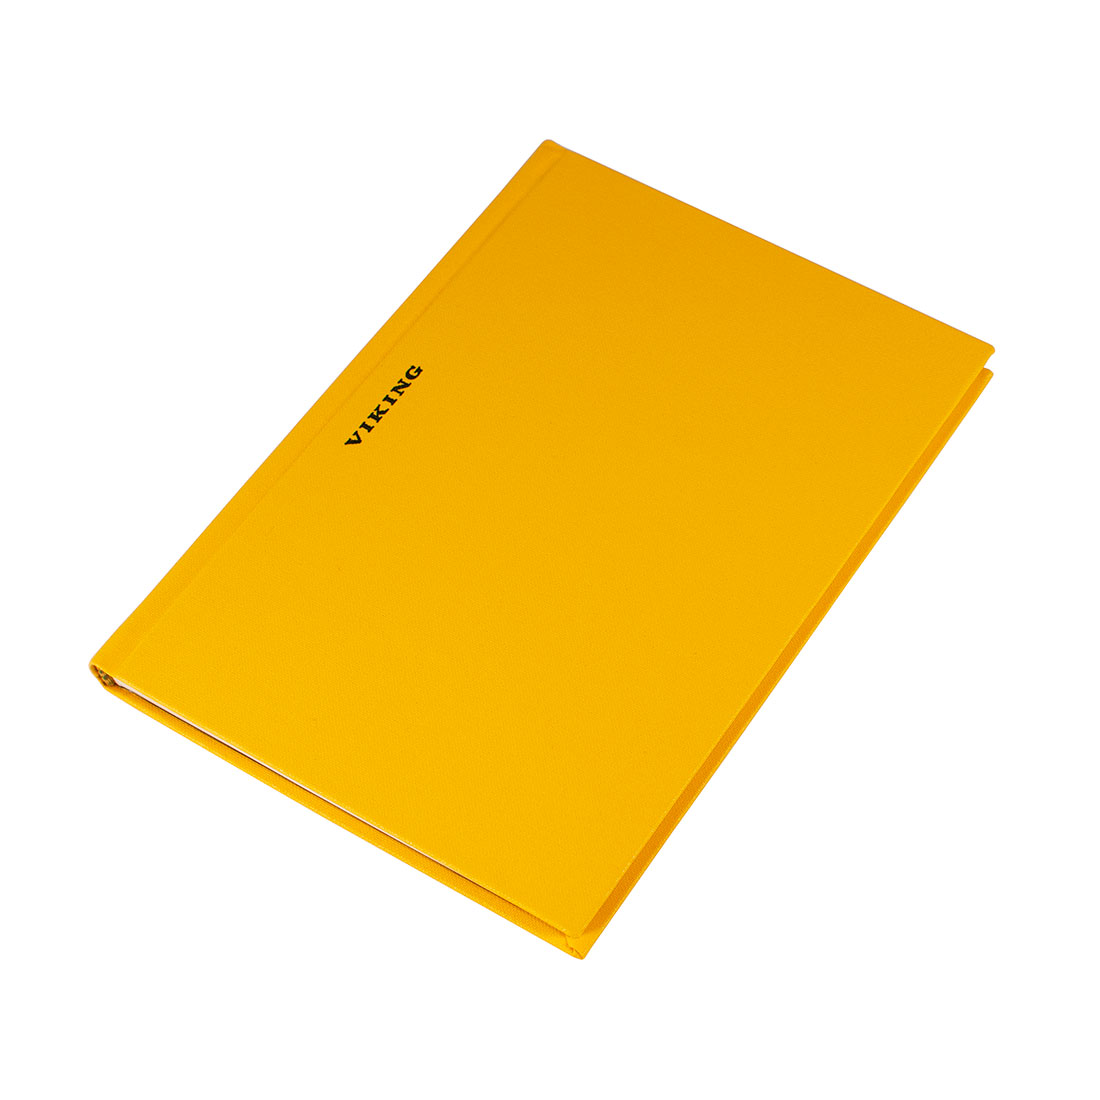 Viking 105 notebook in yellow